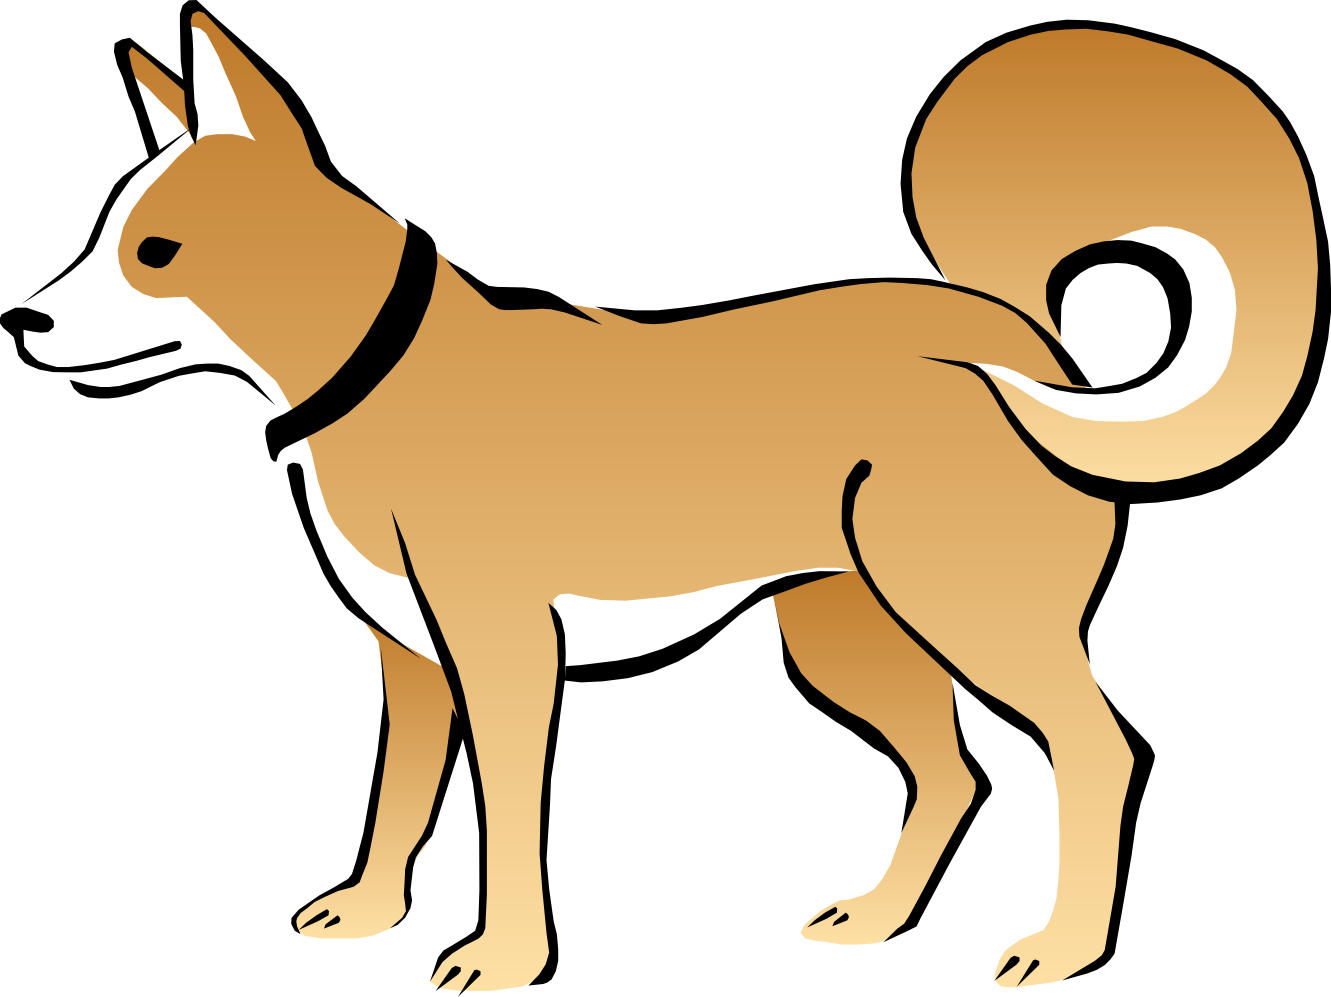 Png image dogs puppy. Chain clipart dog